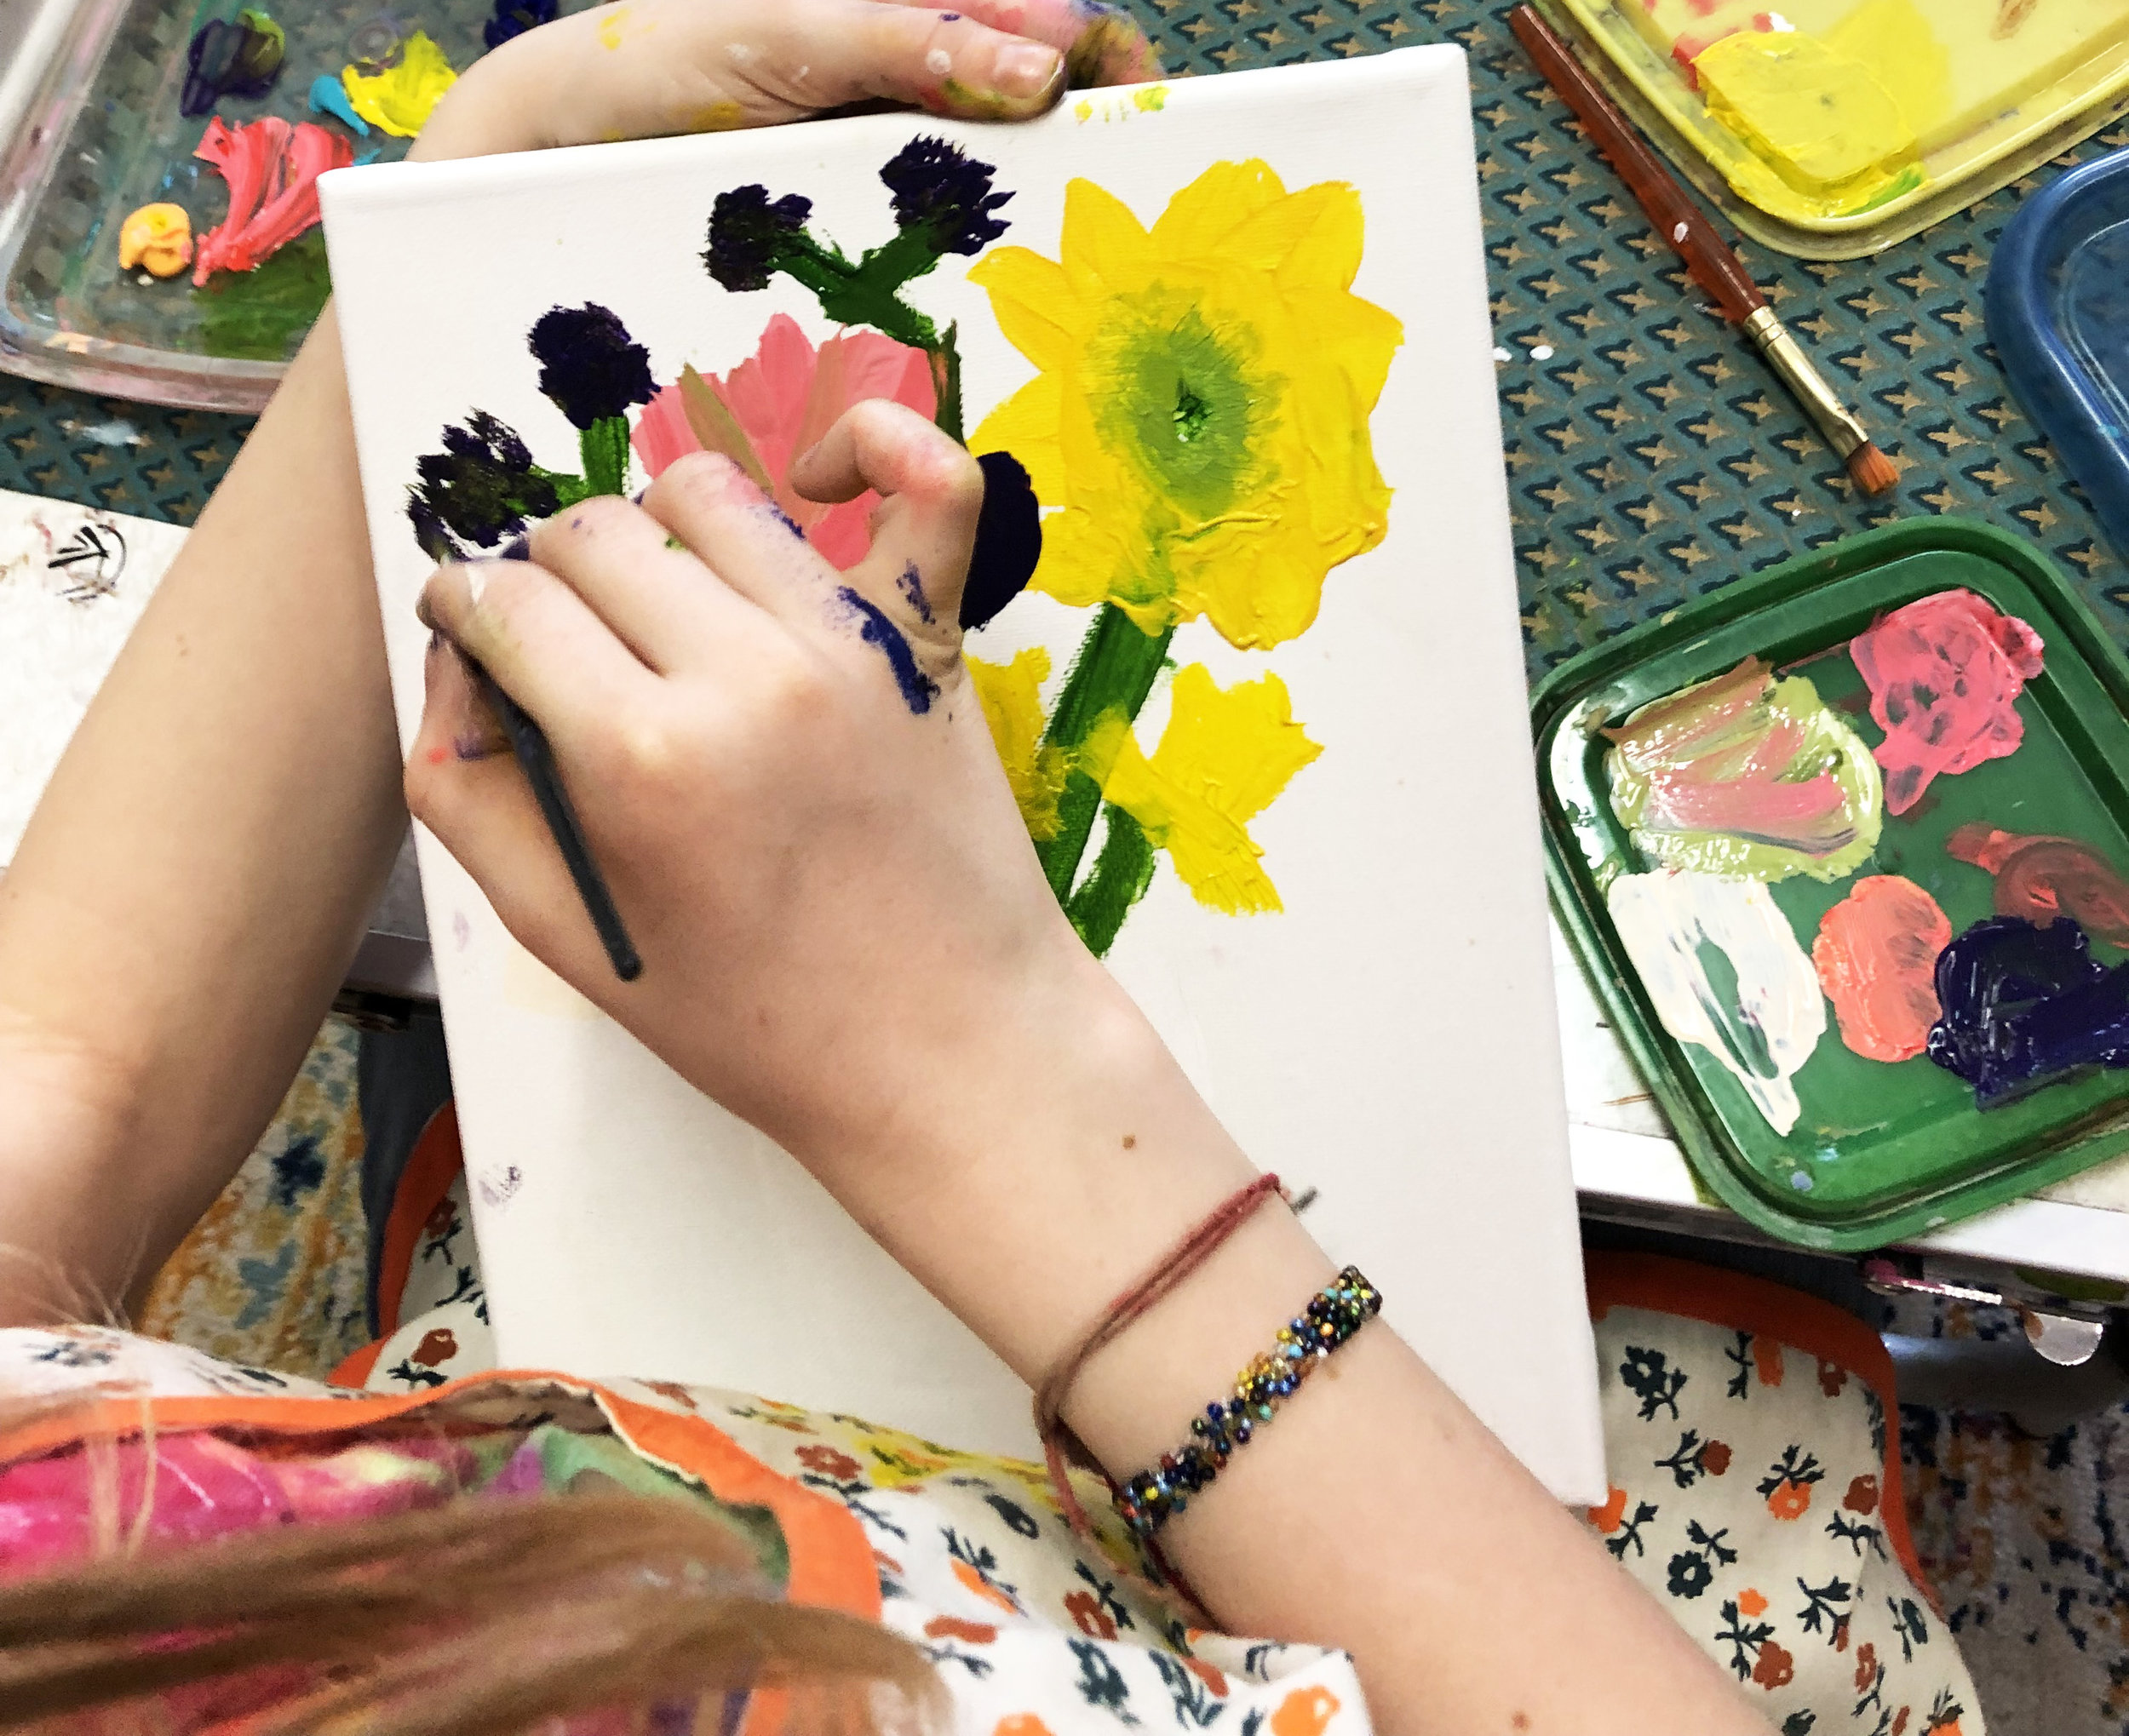 June 24th-28th Full Day Summer Arts - Full Day, Week Long Art-Making WorkshopRSVP to reserve a spot!  MAPS@MusicArtPuppetSound.org9am-3pm: $875In this week-long, full day experience at MAPS kids will work together to create an art gallery. We will spend all week making artwork (painting, sculpture, drawing, textiles, etc!) which will then be shown in our space on the evening of Friday June 28th.Children will study various historic and contemporary artists as we think about and explore form, color, shape and ideas. Kids will practice thinking about their own artwork, creating artist statements and titling their work.*Pack your own lunch. We will walk to the park to eat and play, weather permitting. We provide snacks!